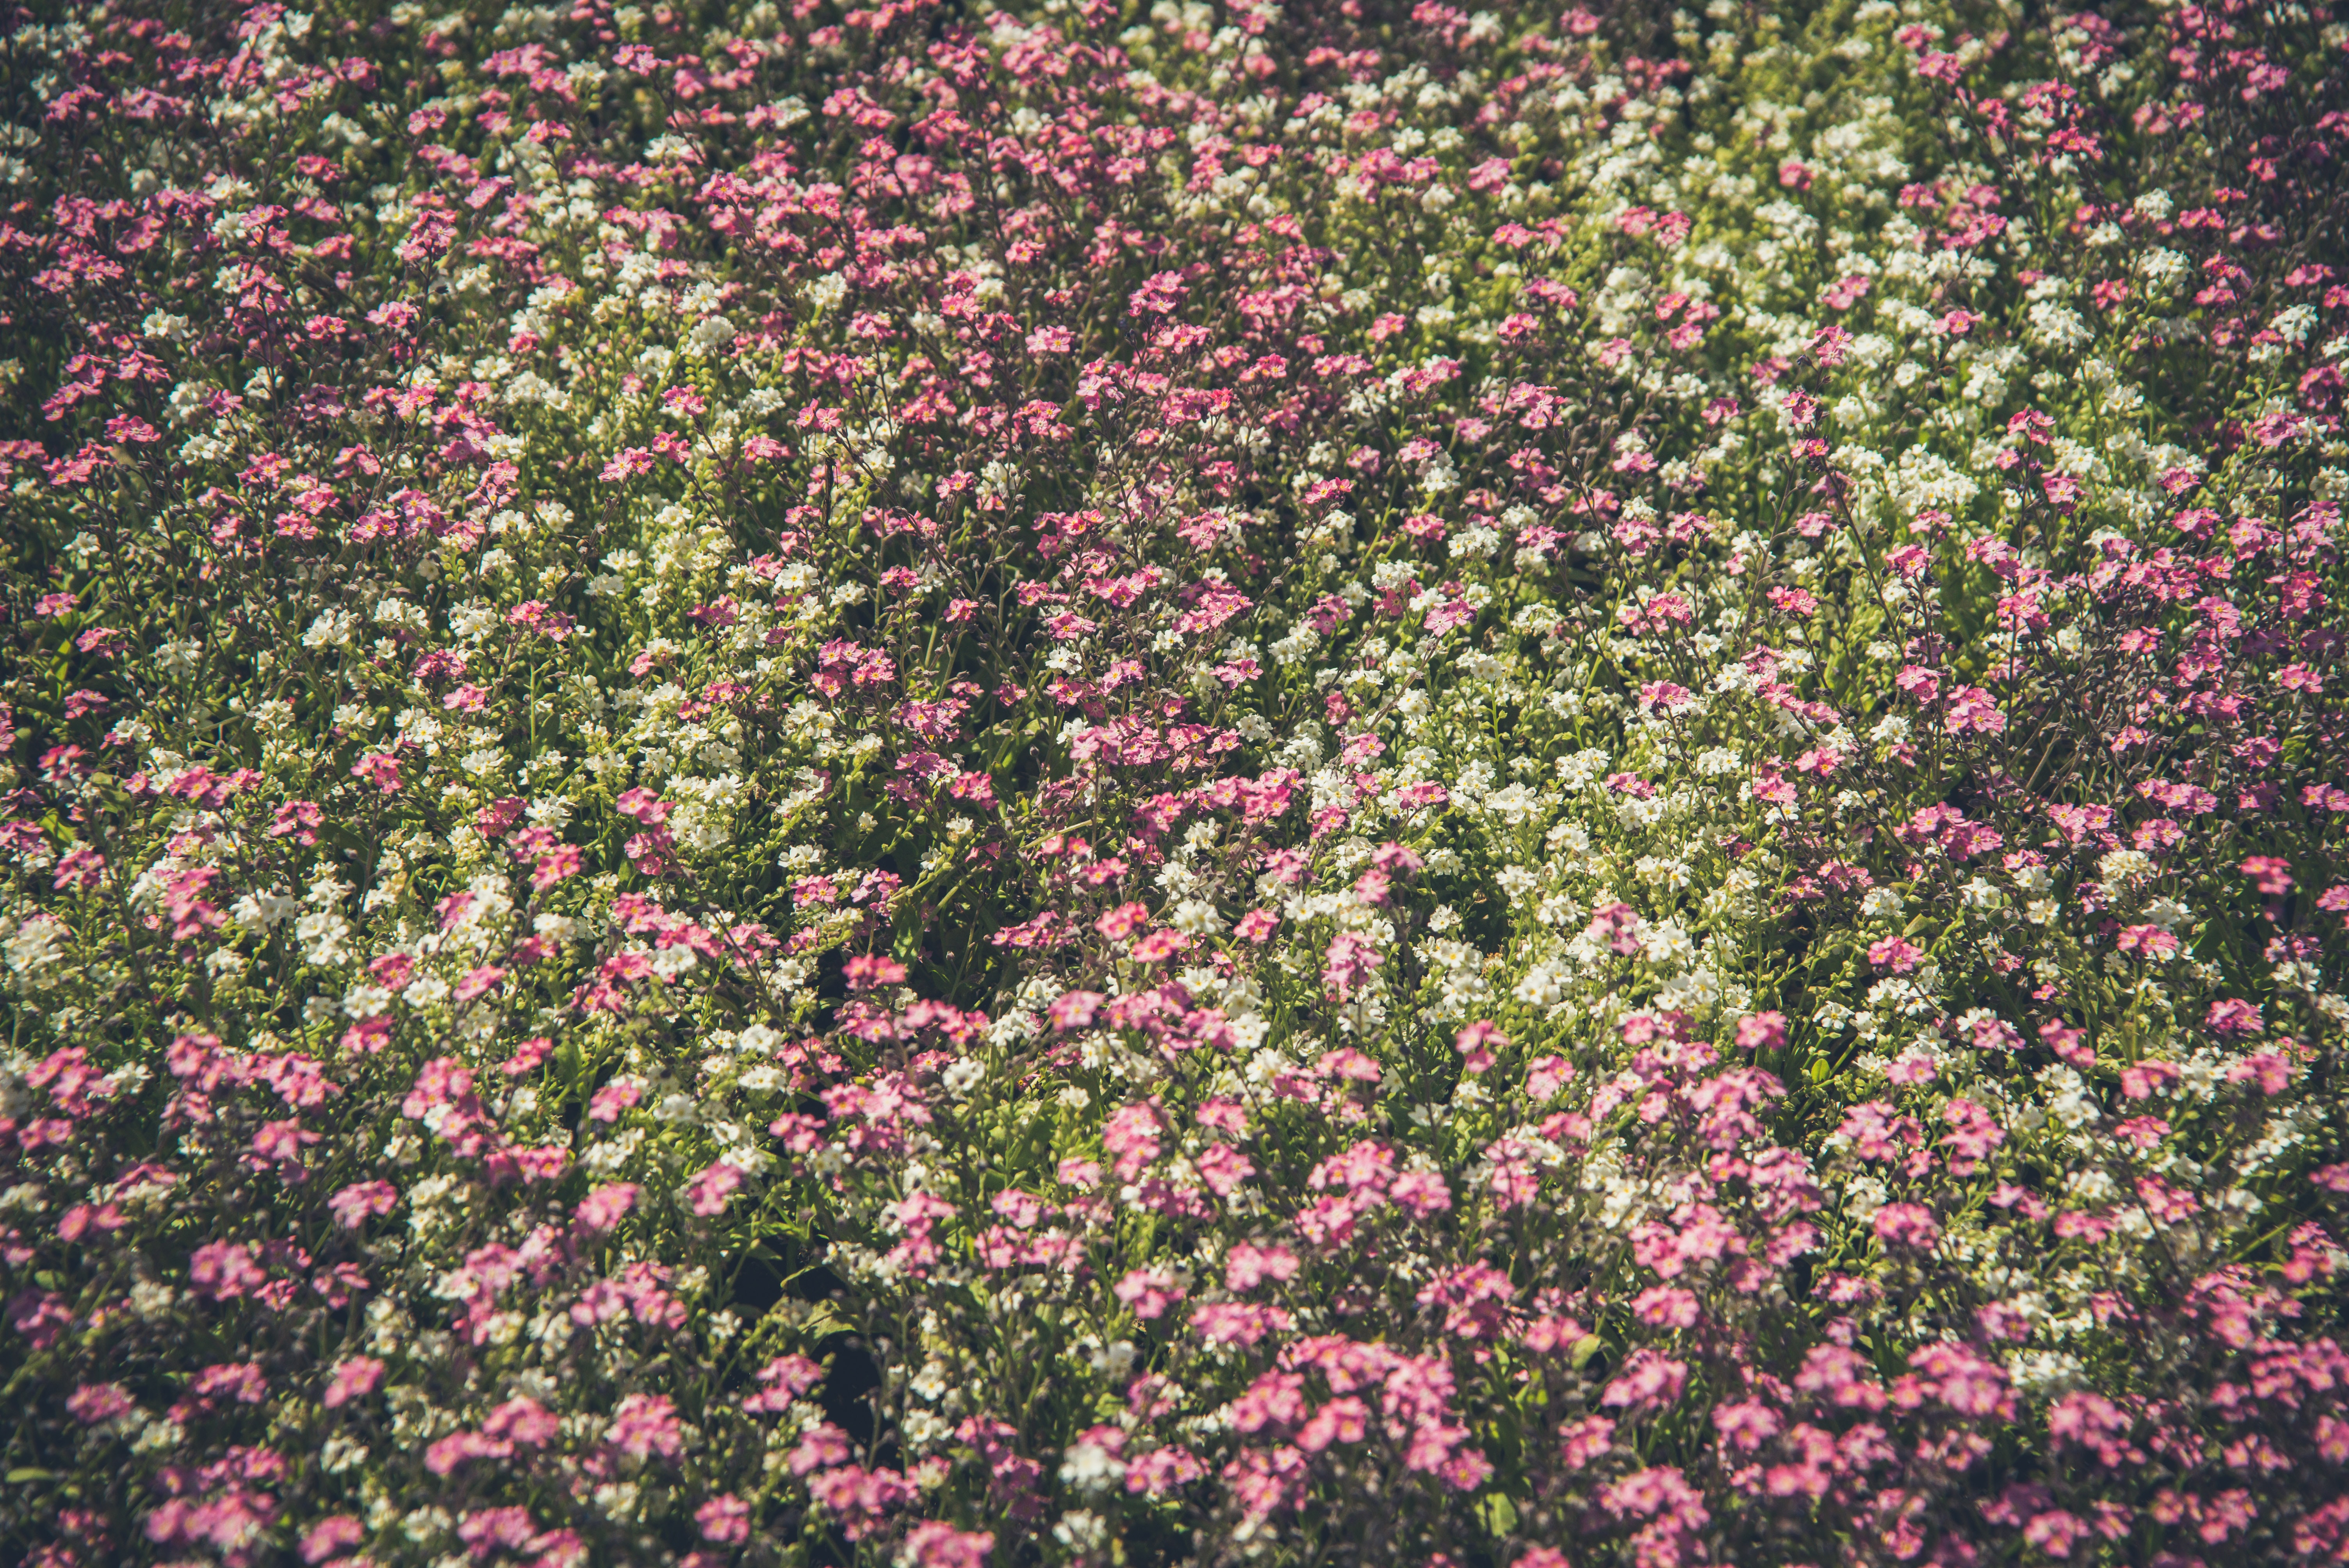 A dense patch of white and pink flowers in a park